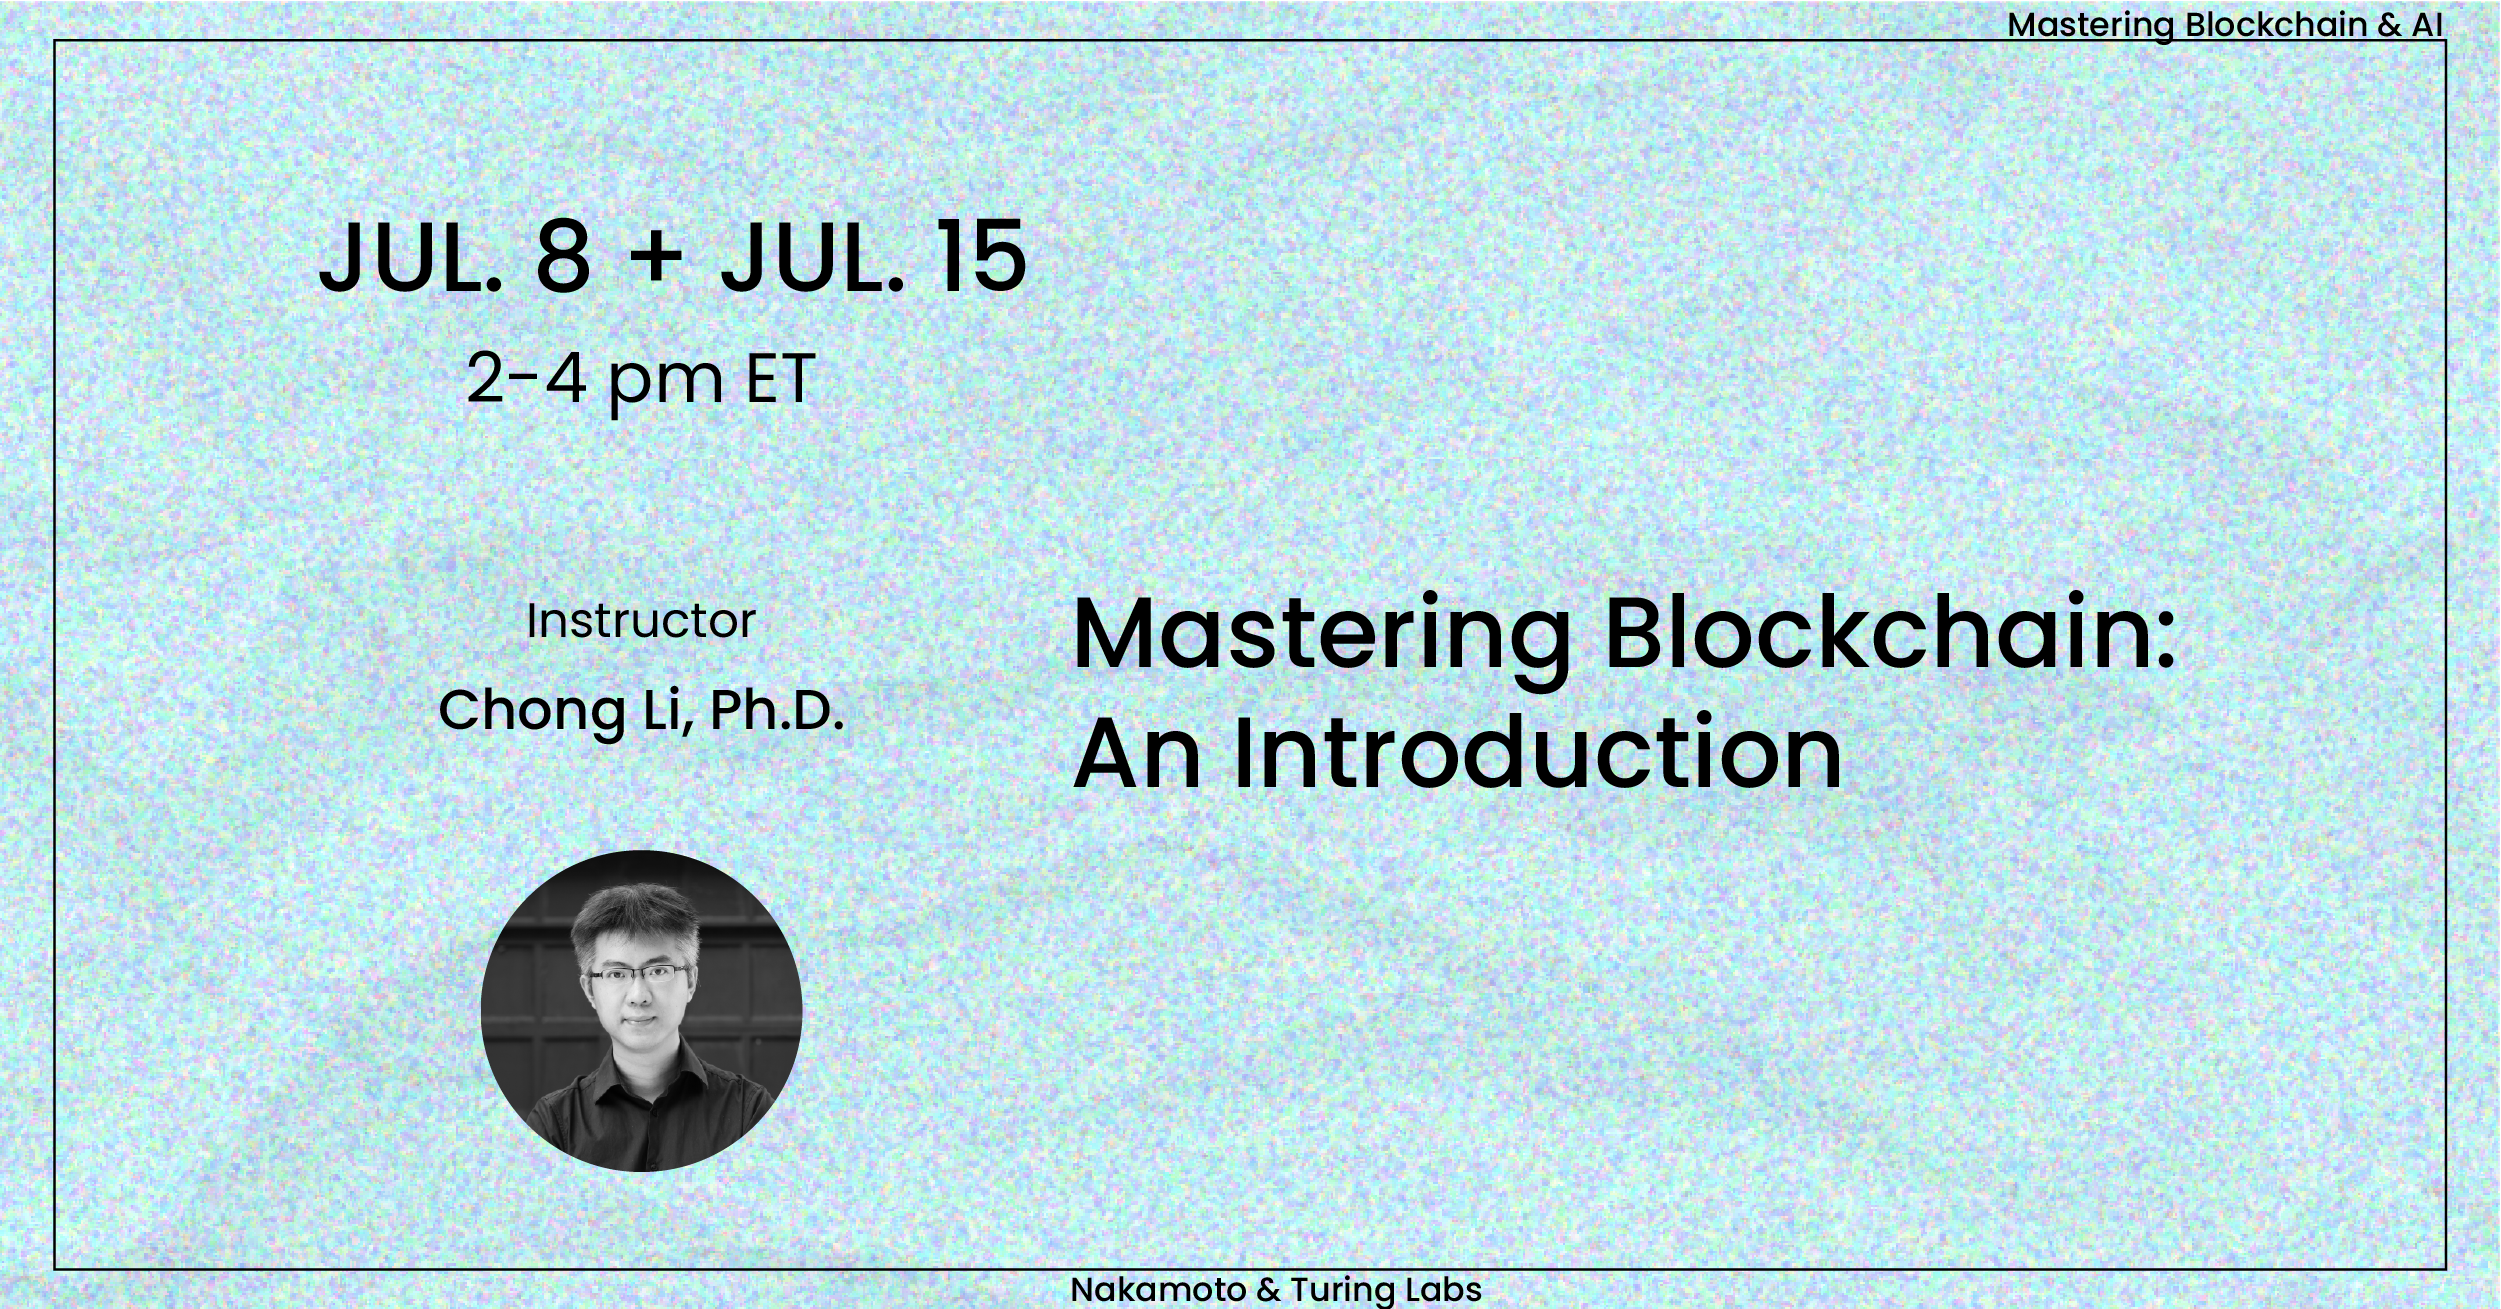 Mastering Blockchain: An Introduction